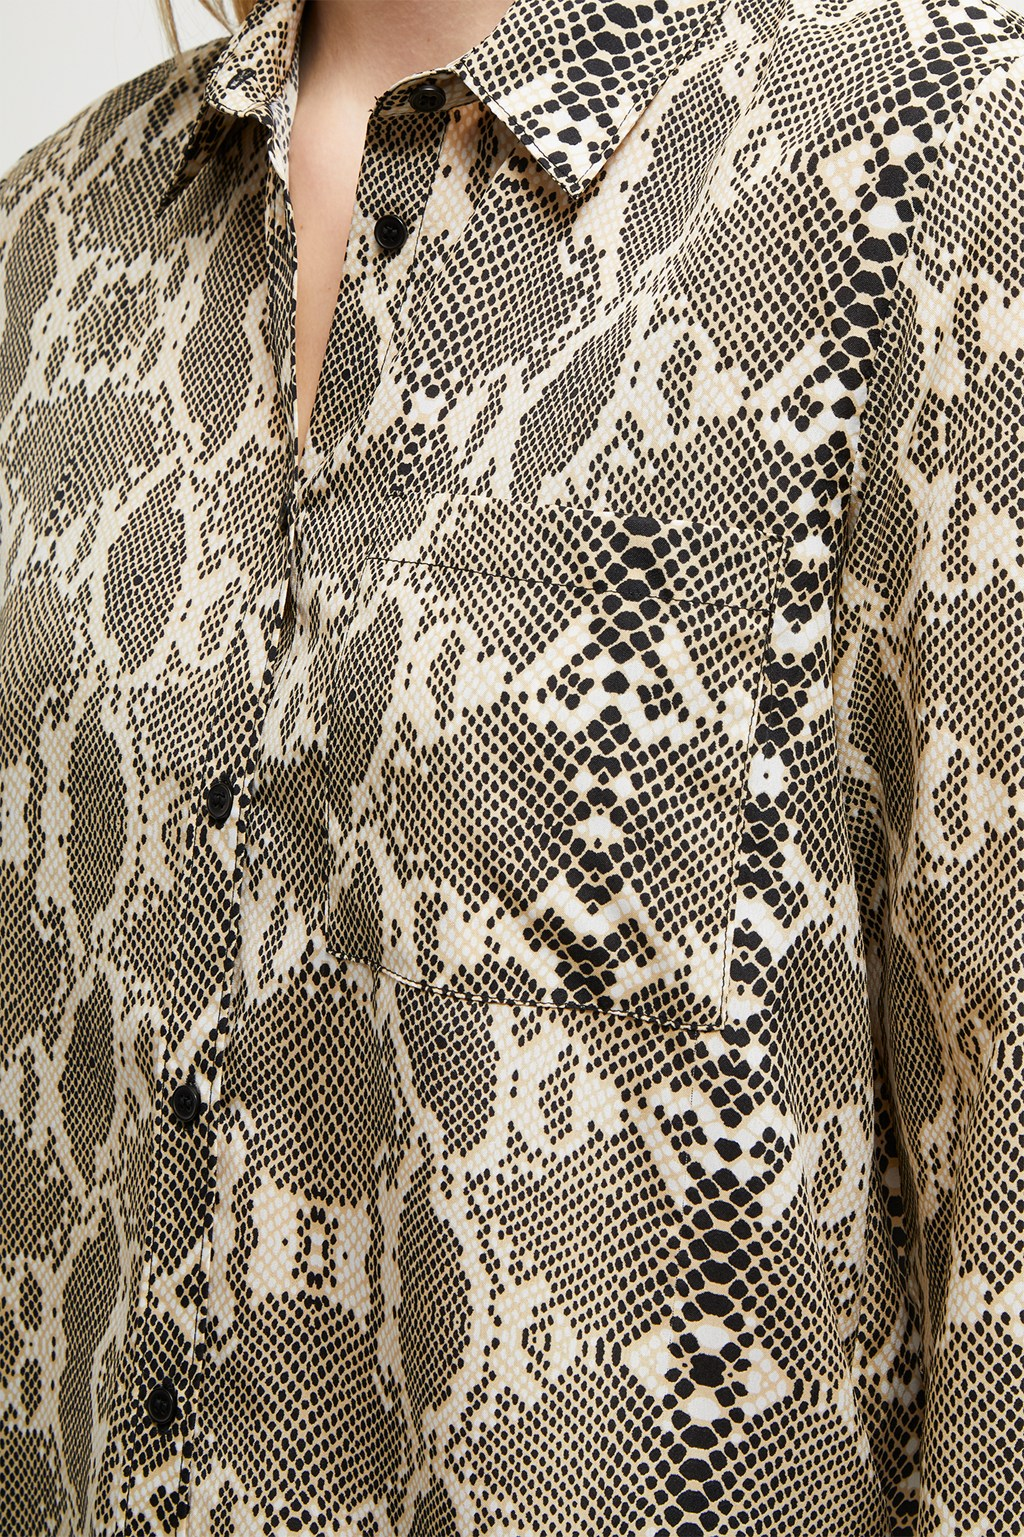 32ec2947 Snake Print Boyfit Shirt. loading images... loading images.